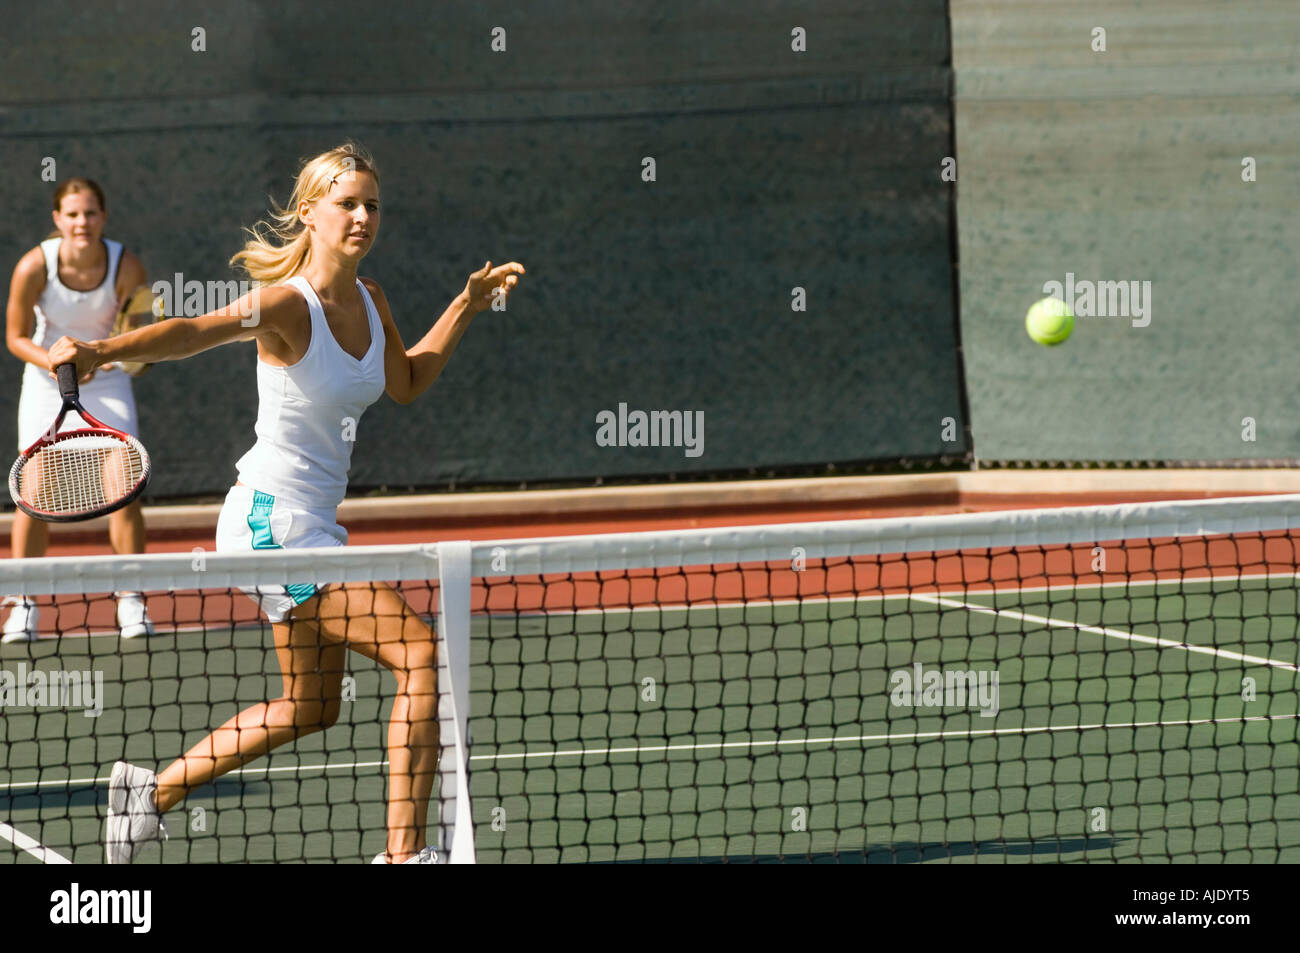 Doubles tennis Player Hitting tennis ball with Backhand - Stock Image